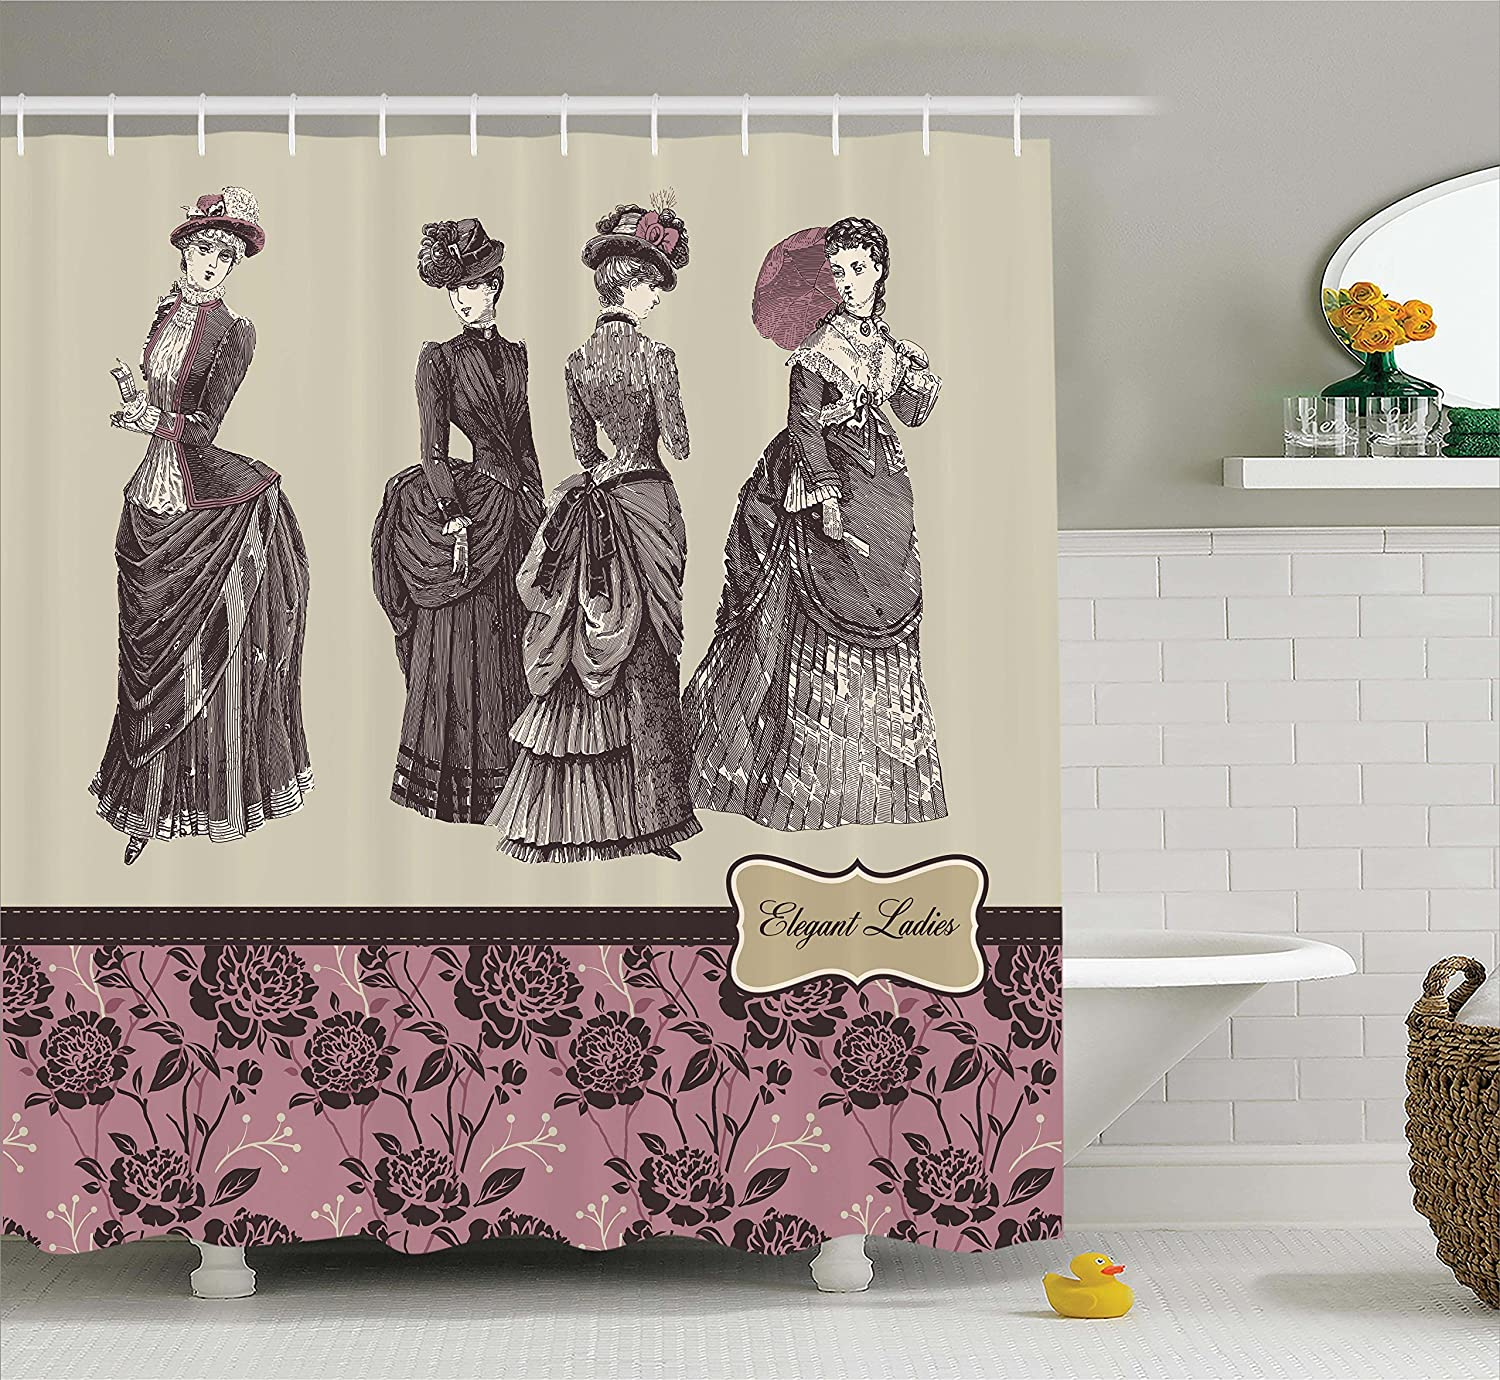 Ambesonne Victorian Shower Curtain Ladies Clothes Fashion History Dress Handbag Feather Gloves Floral Design Print Fabric Bathroom Decor Set With Hooks